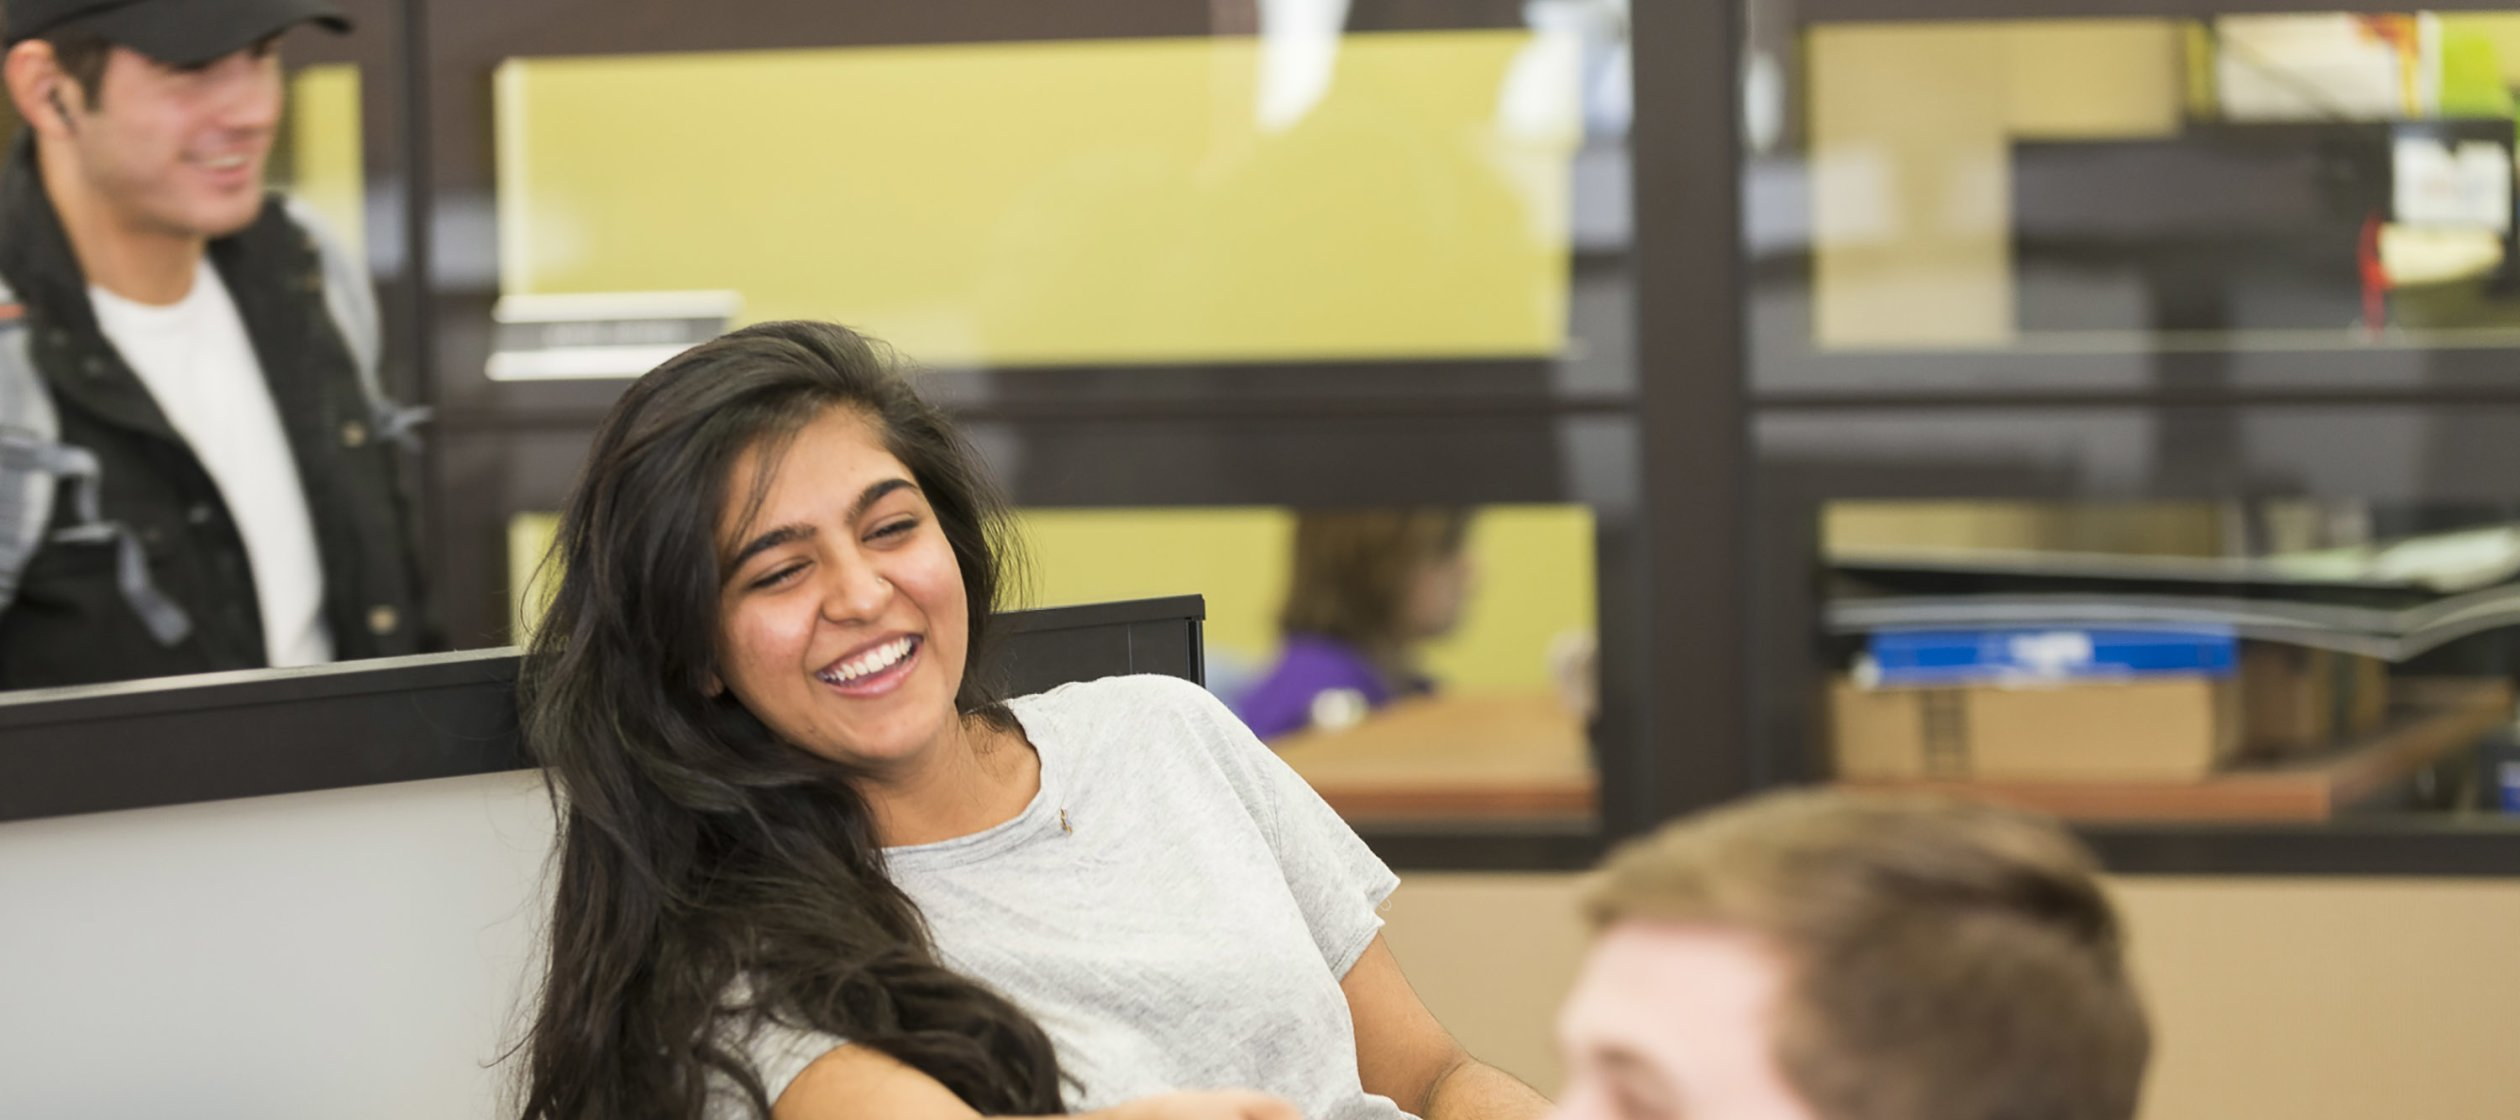 Smiling Students in Library Studying 027